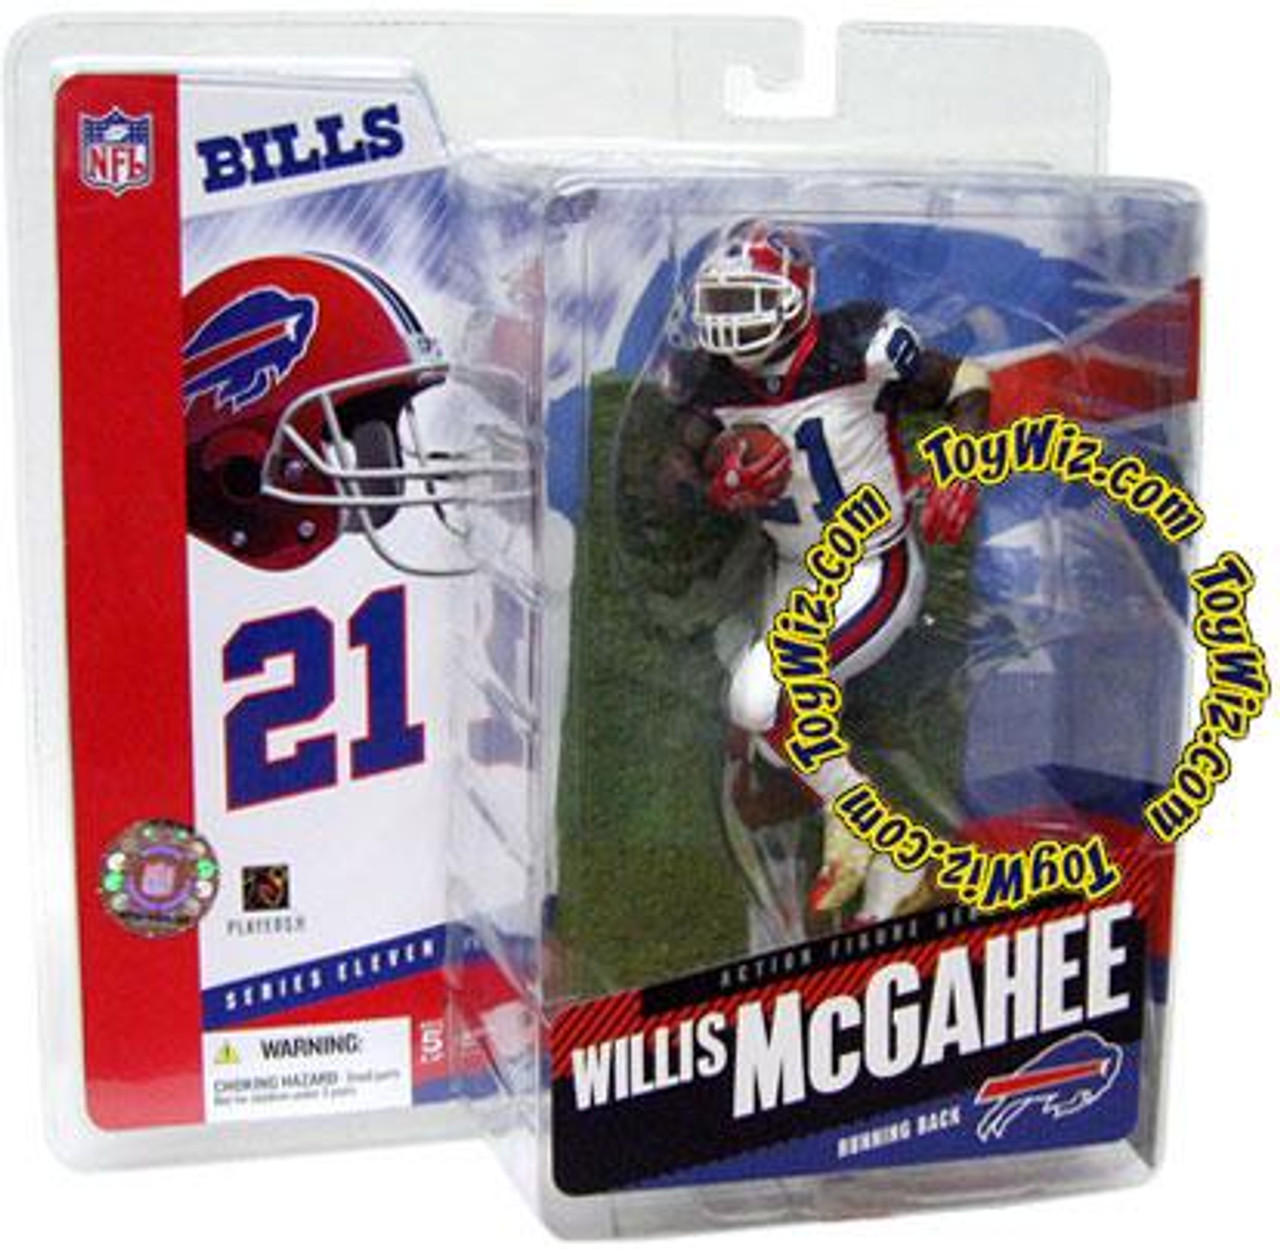 McFarlane Toys NFL Buffalo Bills Sports Picks Series 11 Willis McGahee Action Figure [White Jersey Variant]